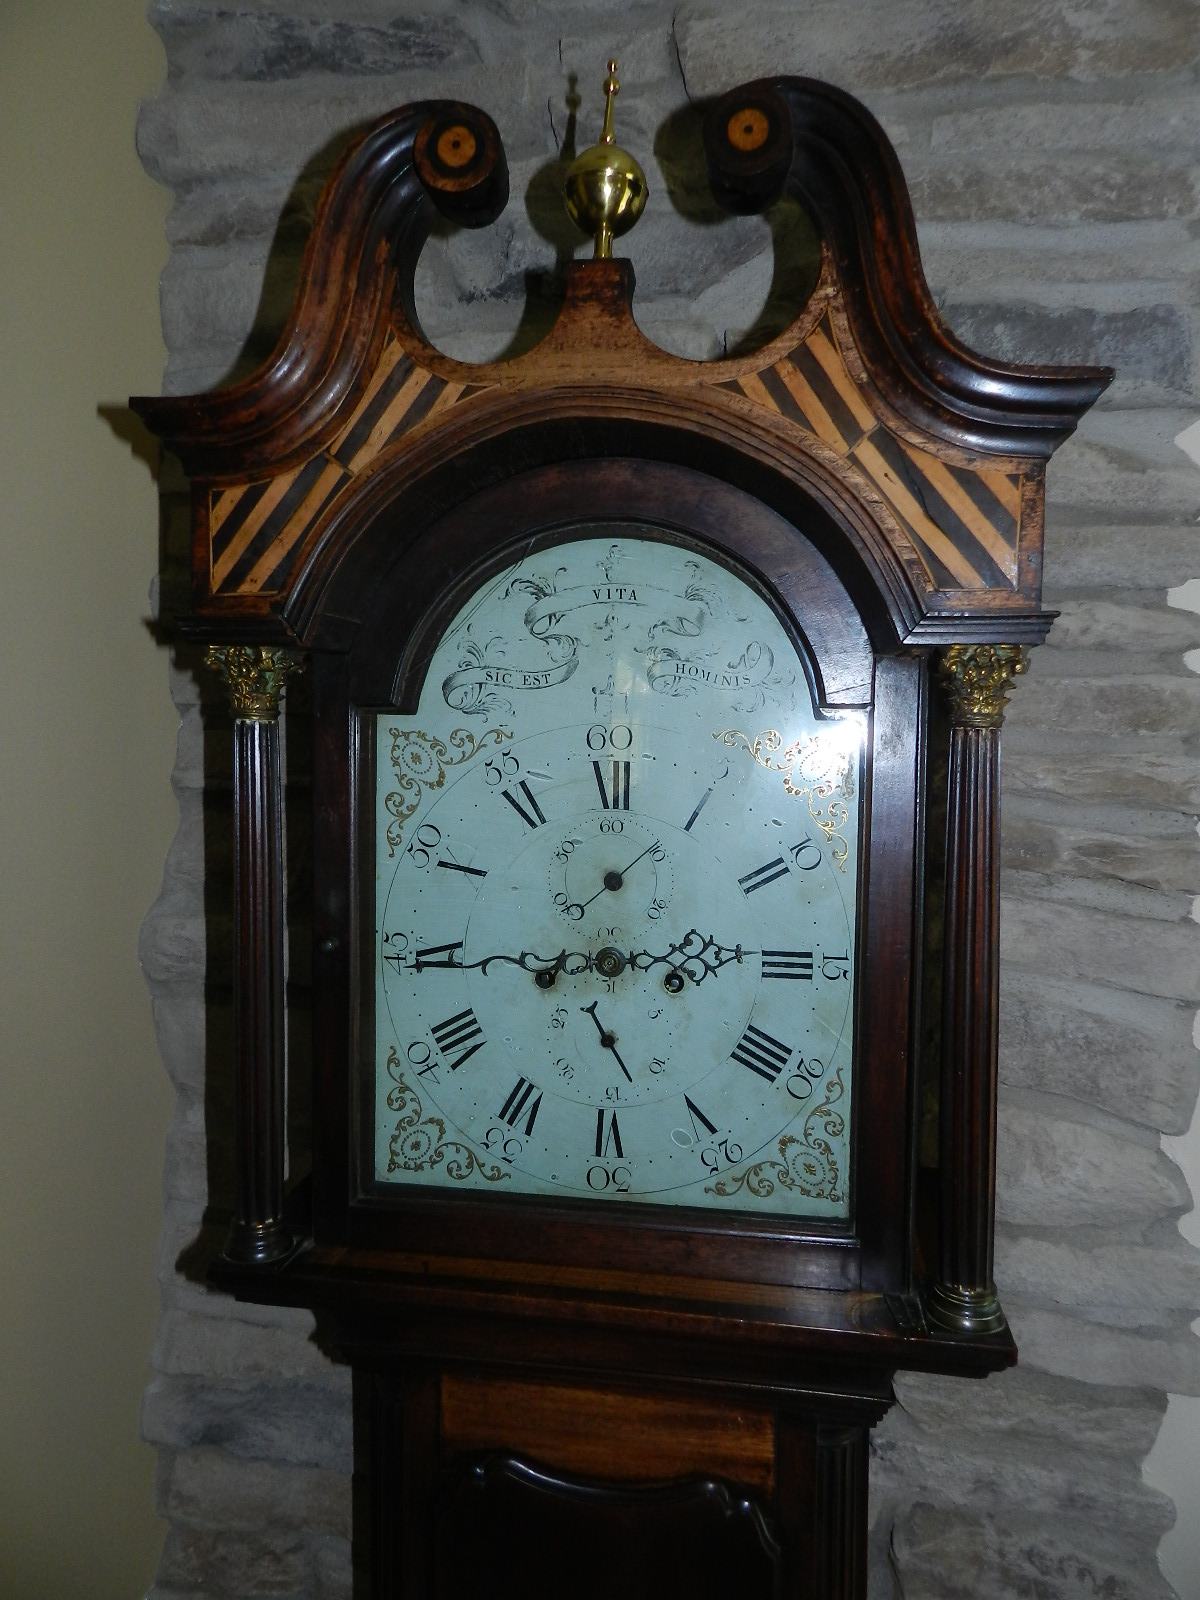 Late 1700 British tall clock